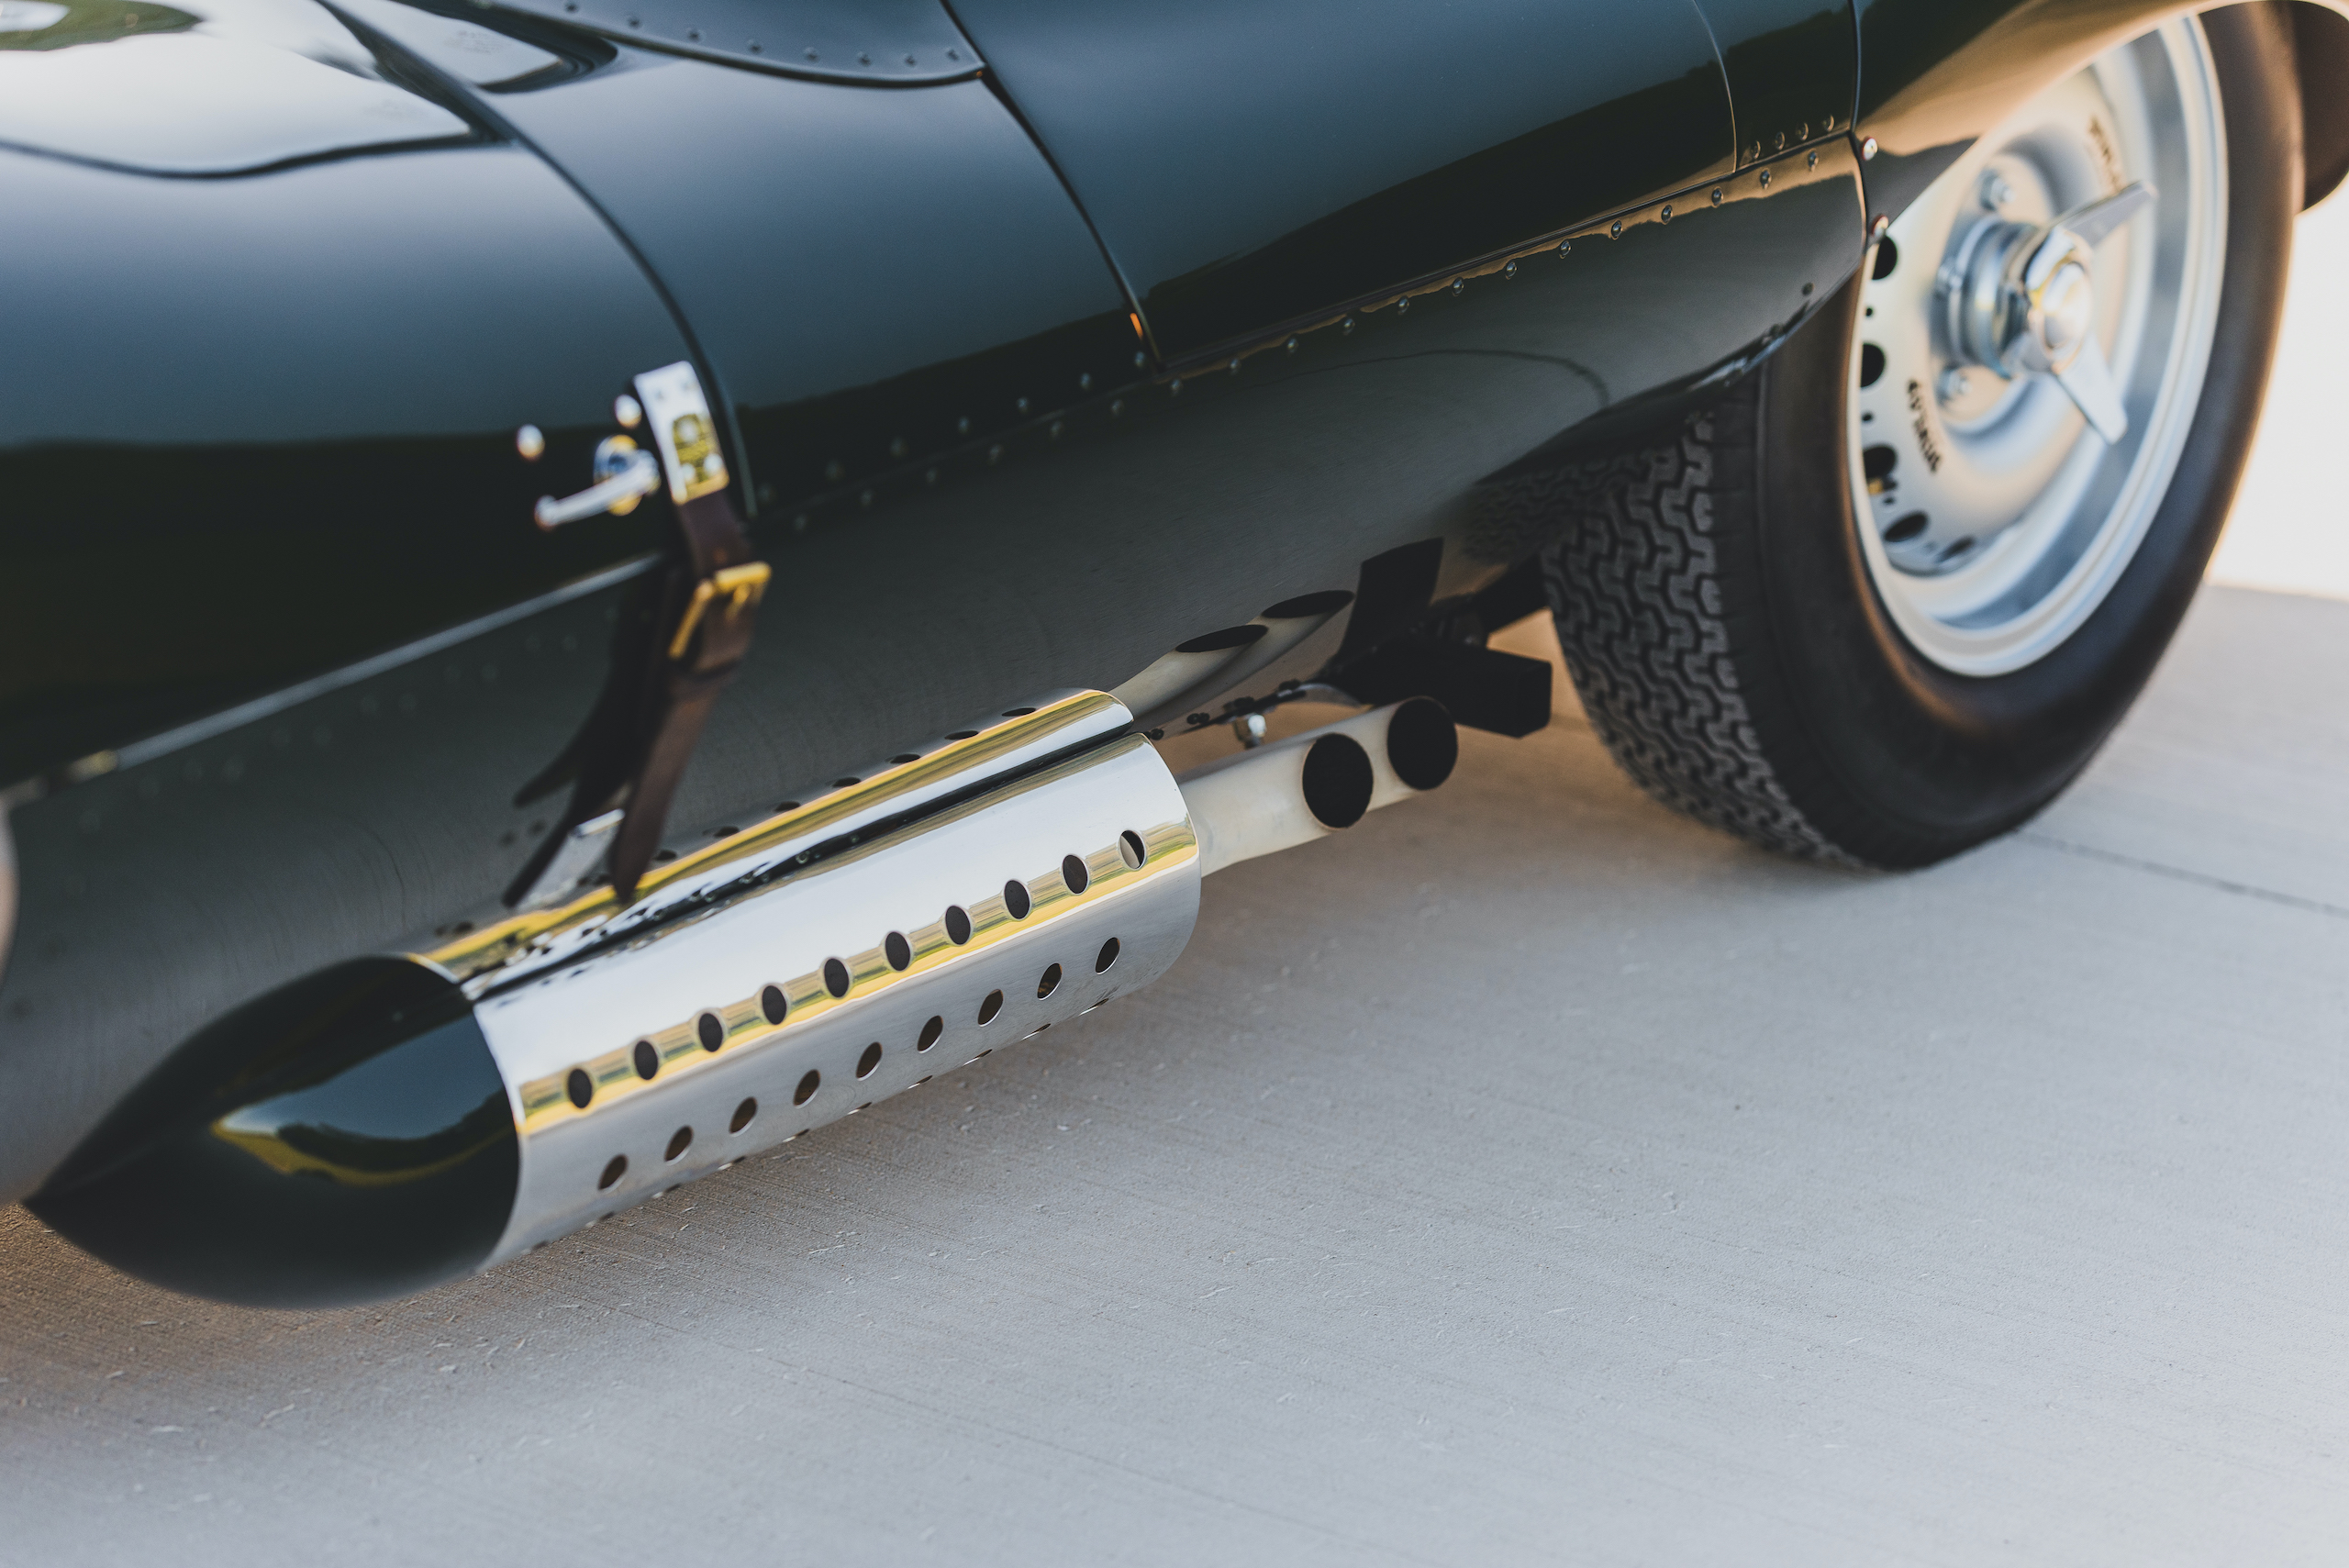 1957 Jag XKSS exhaust side pipes